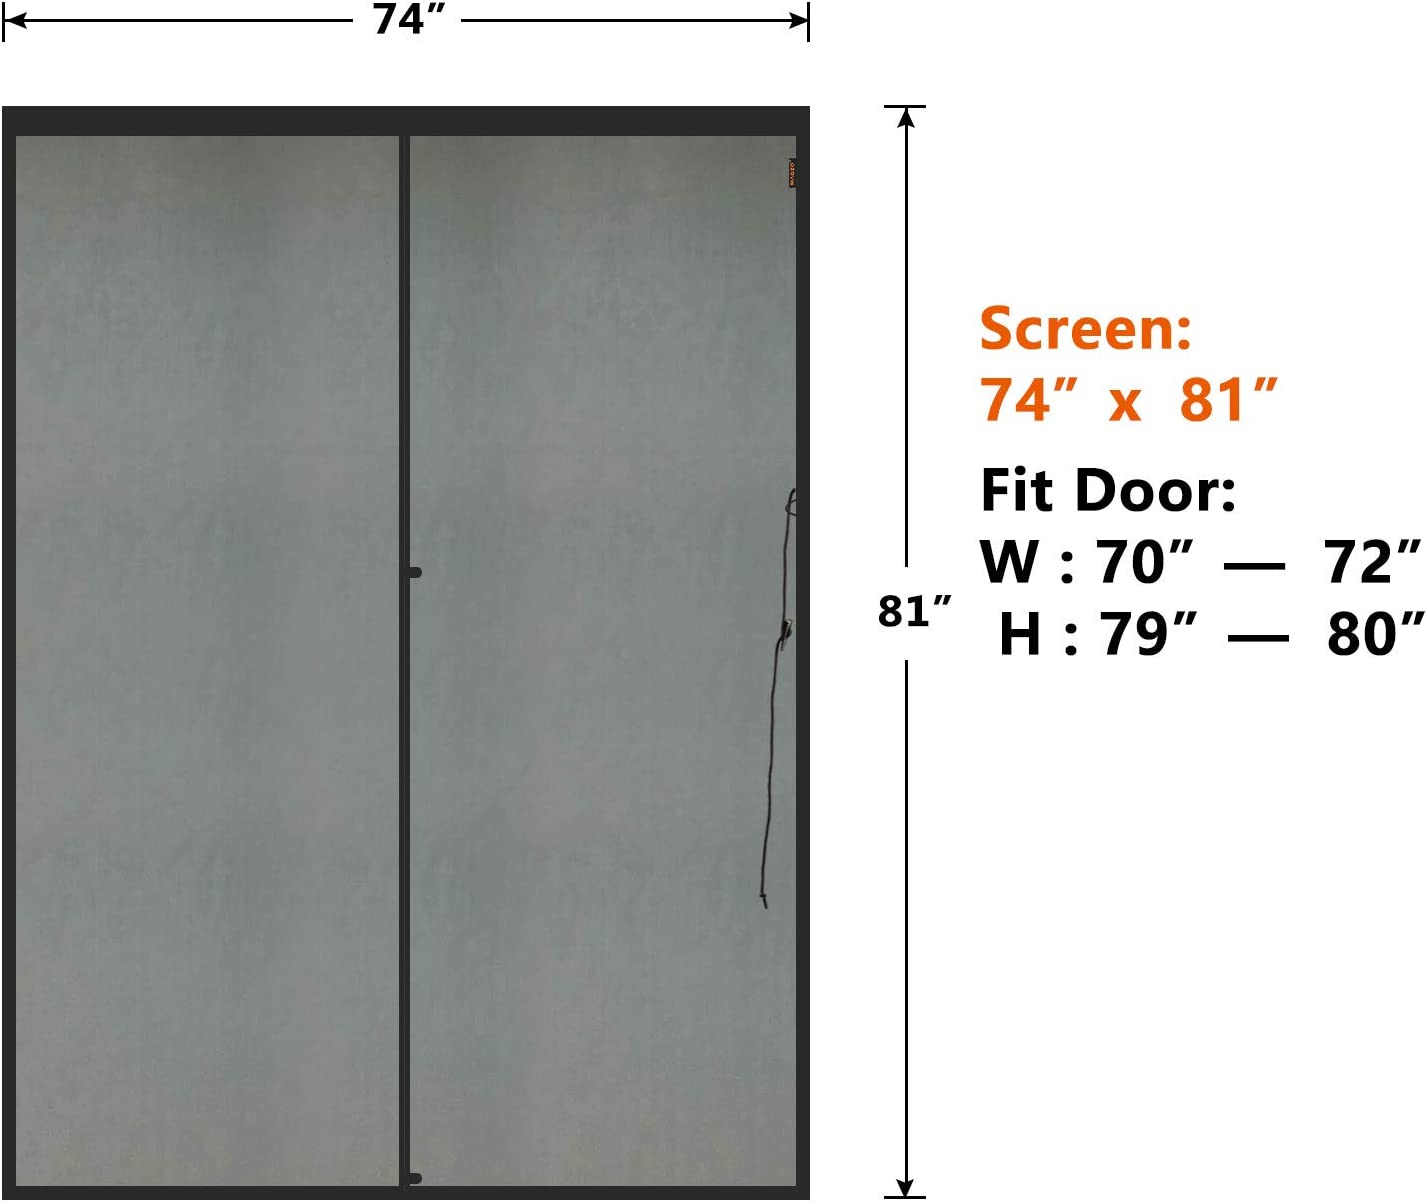 Dog Cat Proof Pet-Resistant Thickening Durable Fiberglass Sliding Mesh Screen Curtain with Magnets Fits Door Size up to 72x80 Max MAGZO Pet French Door Screen 72x80 inch